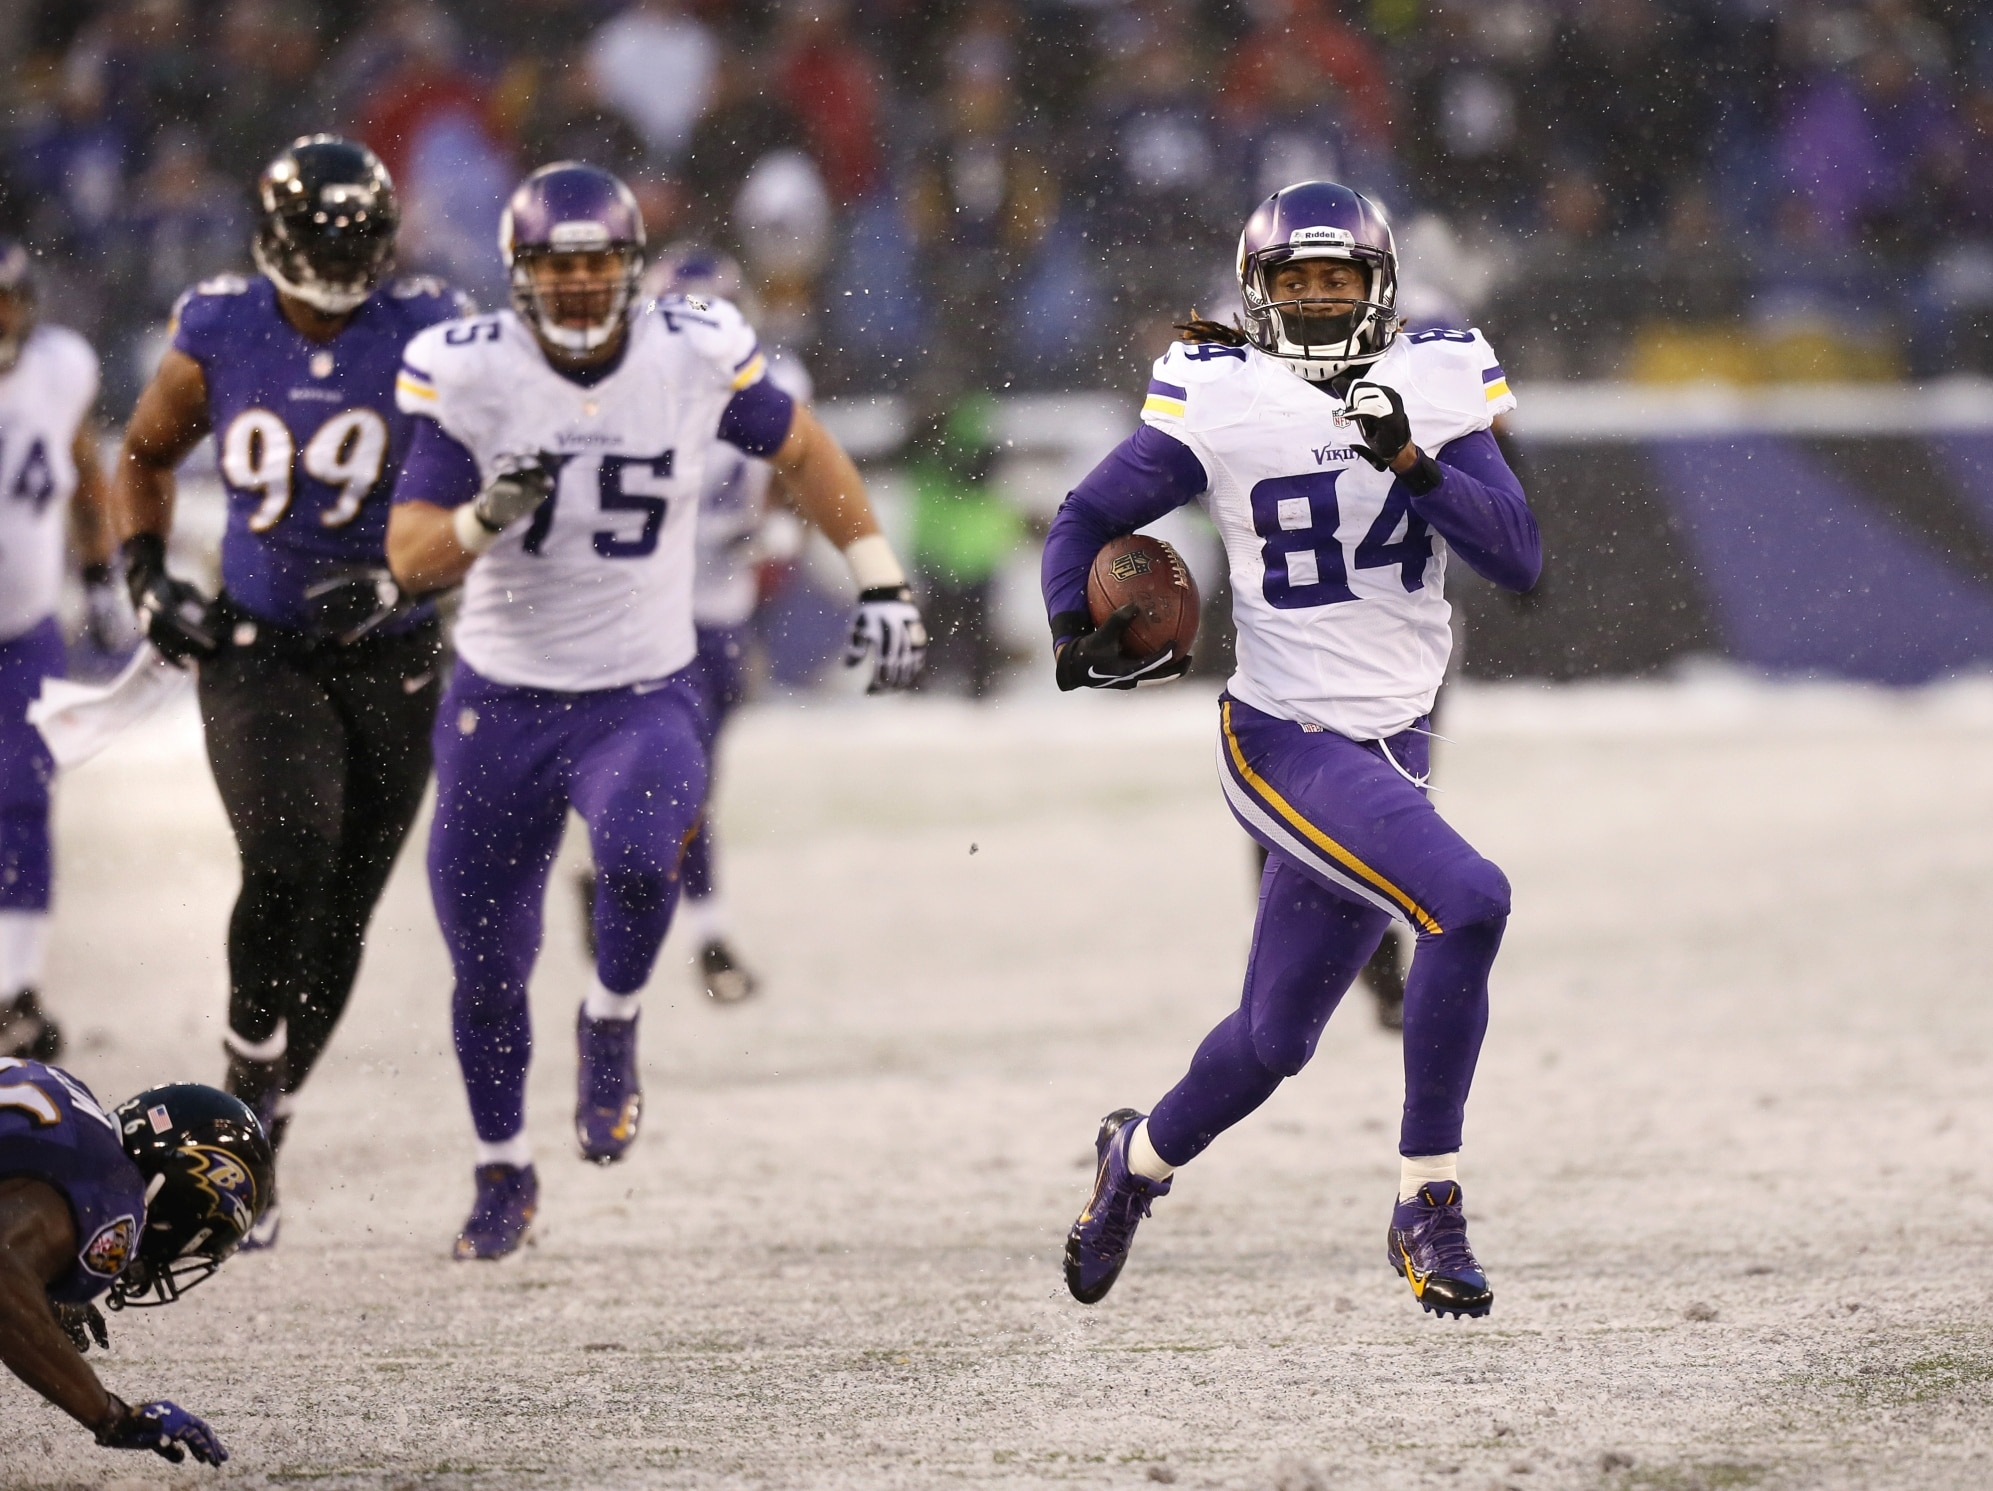 Courtesy of The Star Tribune: Patterson is a break out ready to happen.